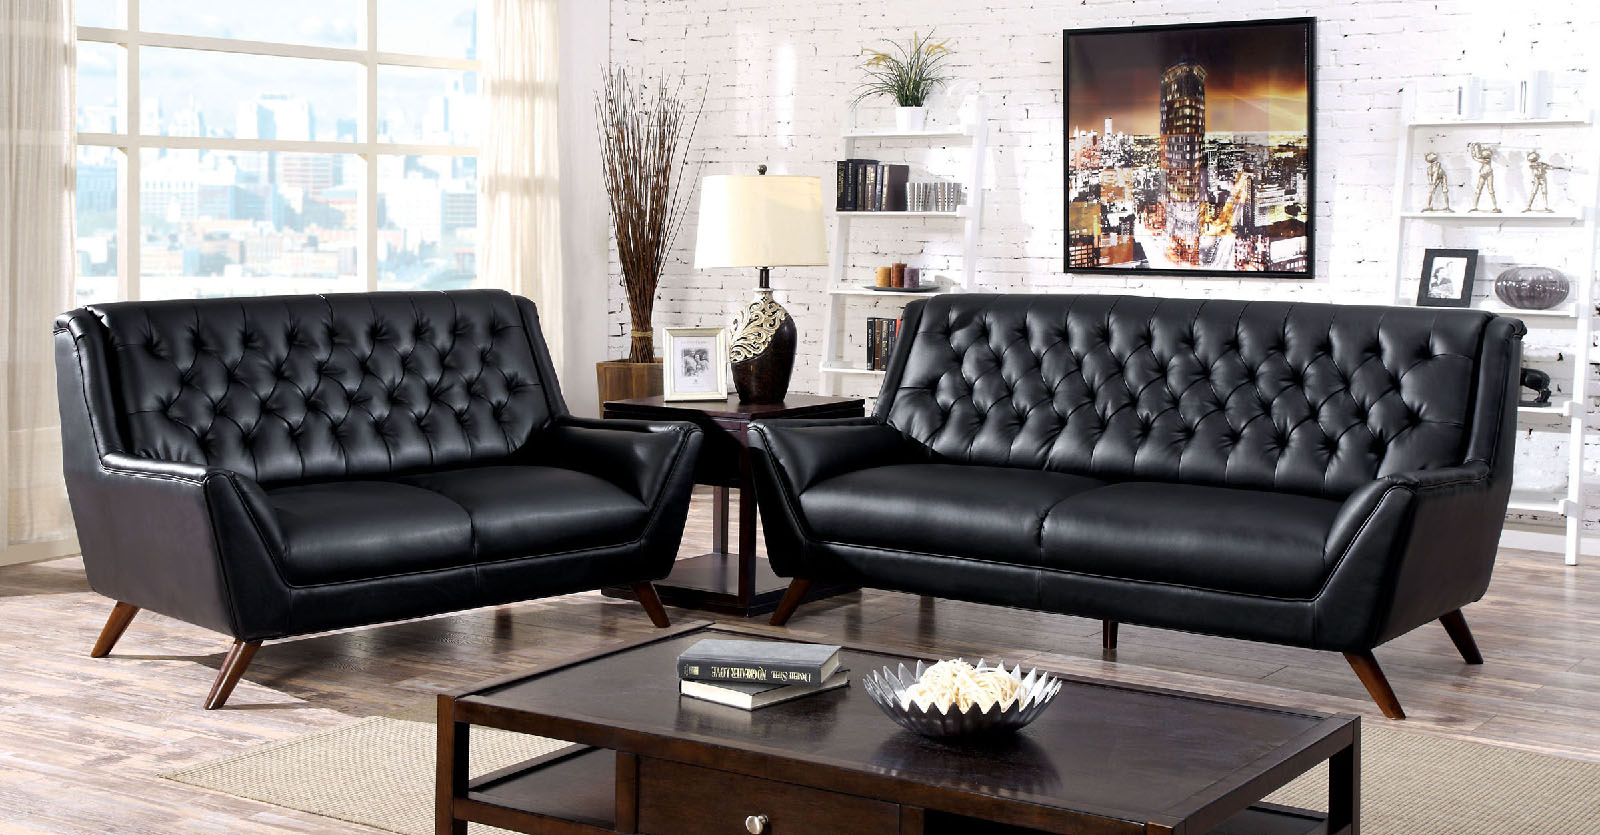 Foa furniture of america leia black sofa loveseat set Living room furniture dallas